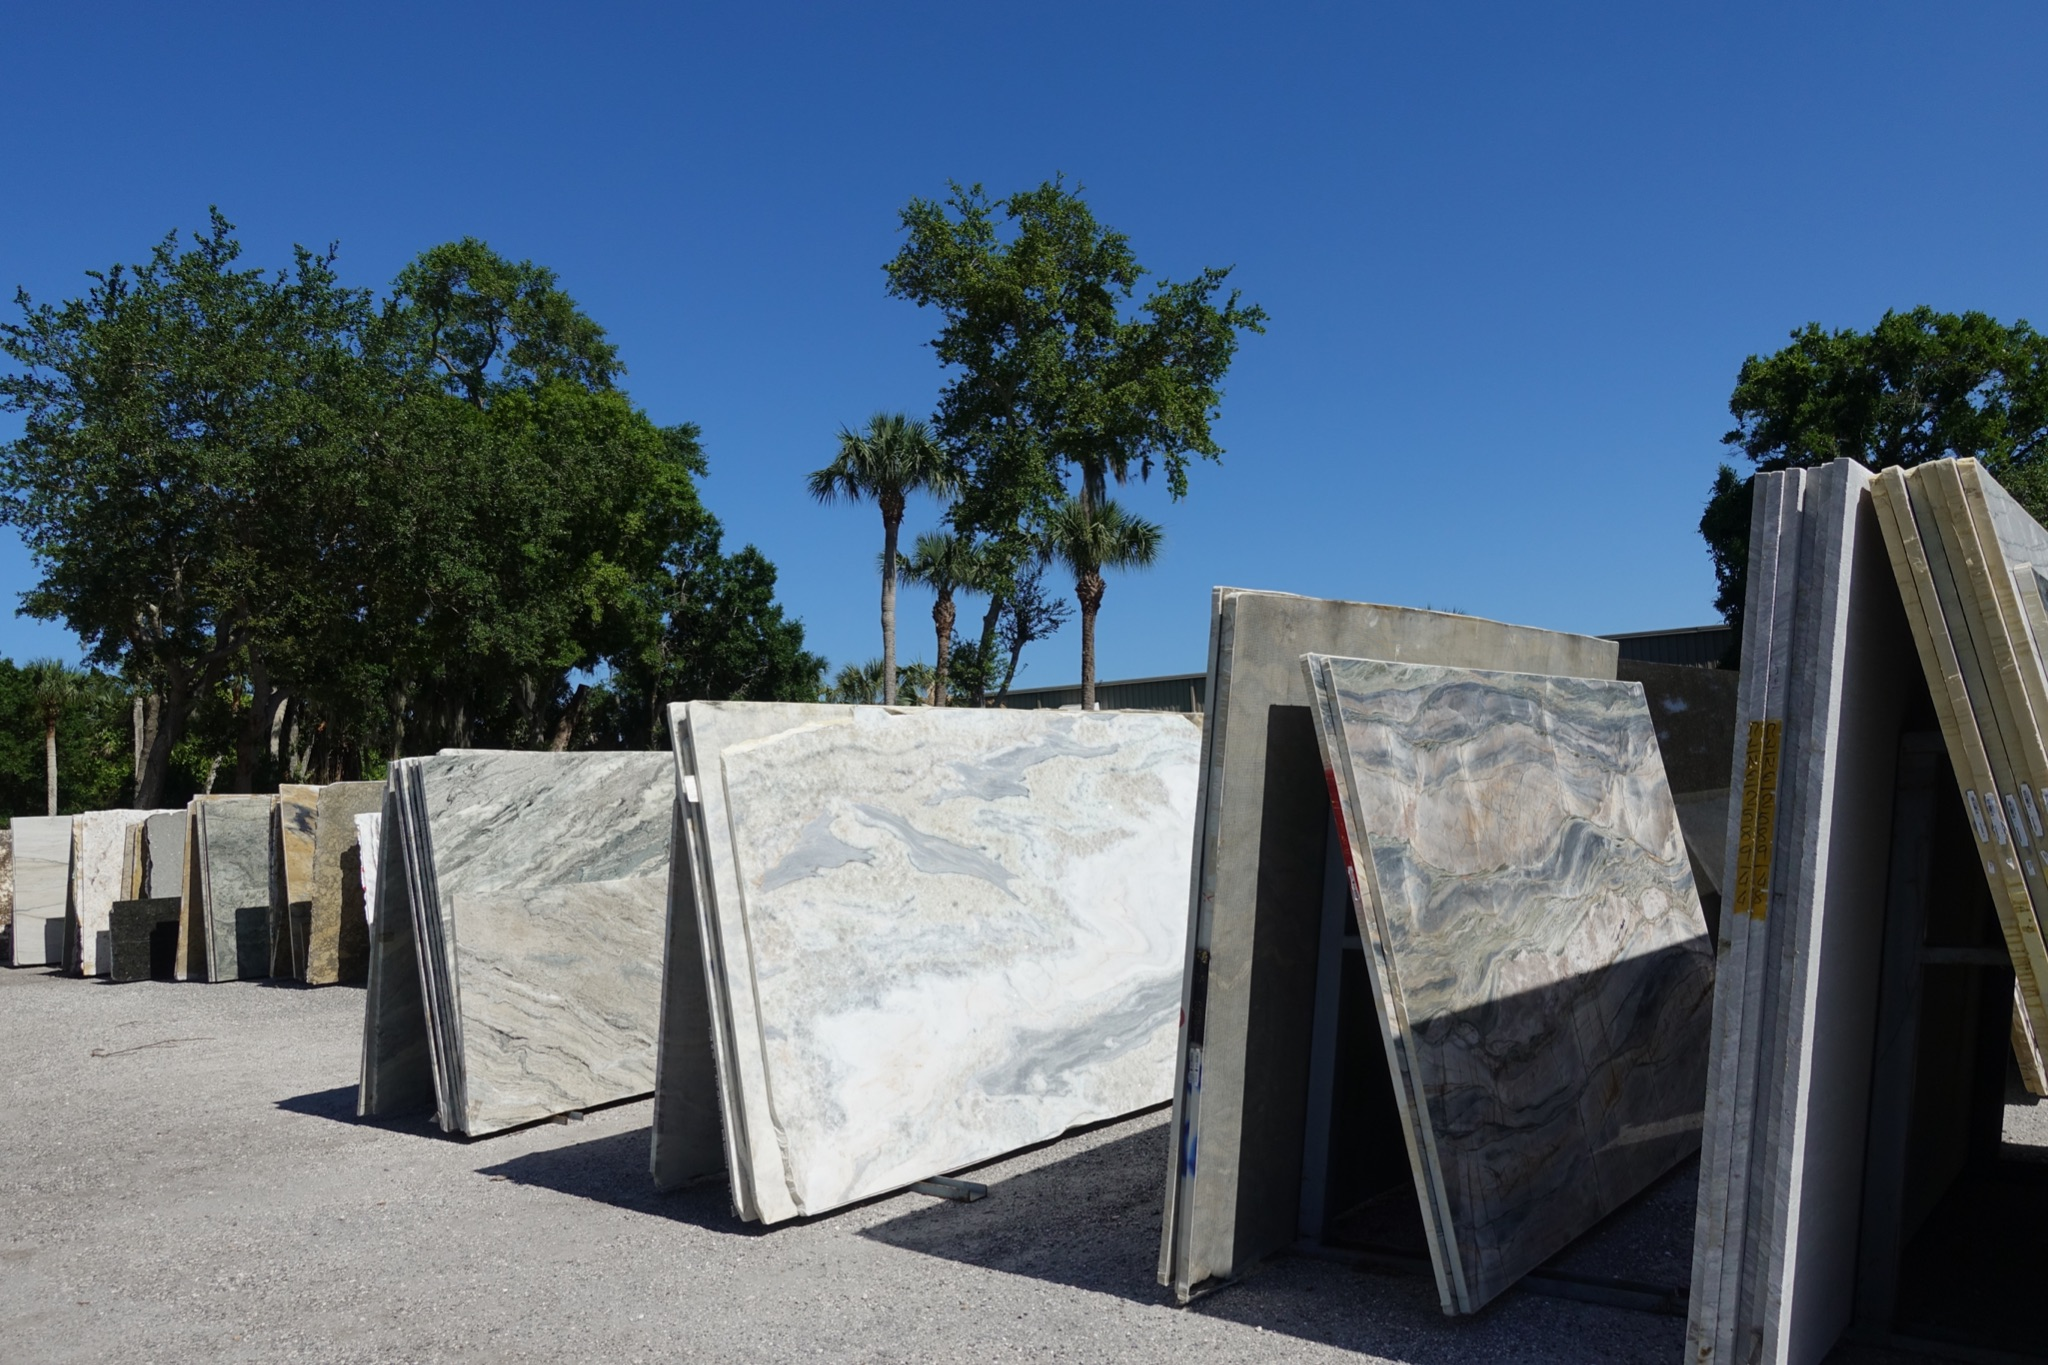 Slabs of granite at a stone supplier. Granite is a type of felsic intrusive igneous rock that is granular and phaneritic in texture. Granites can be mostly white, pink, or gray in color.